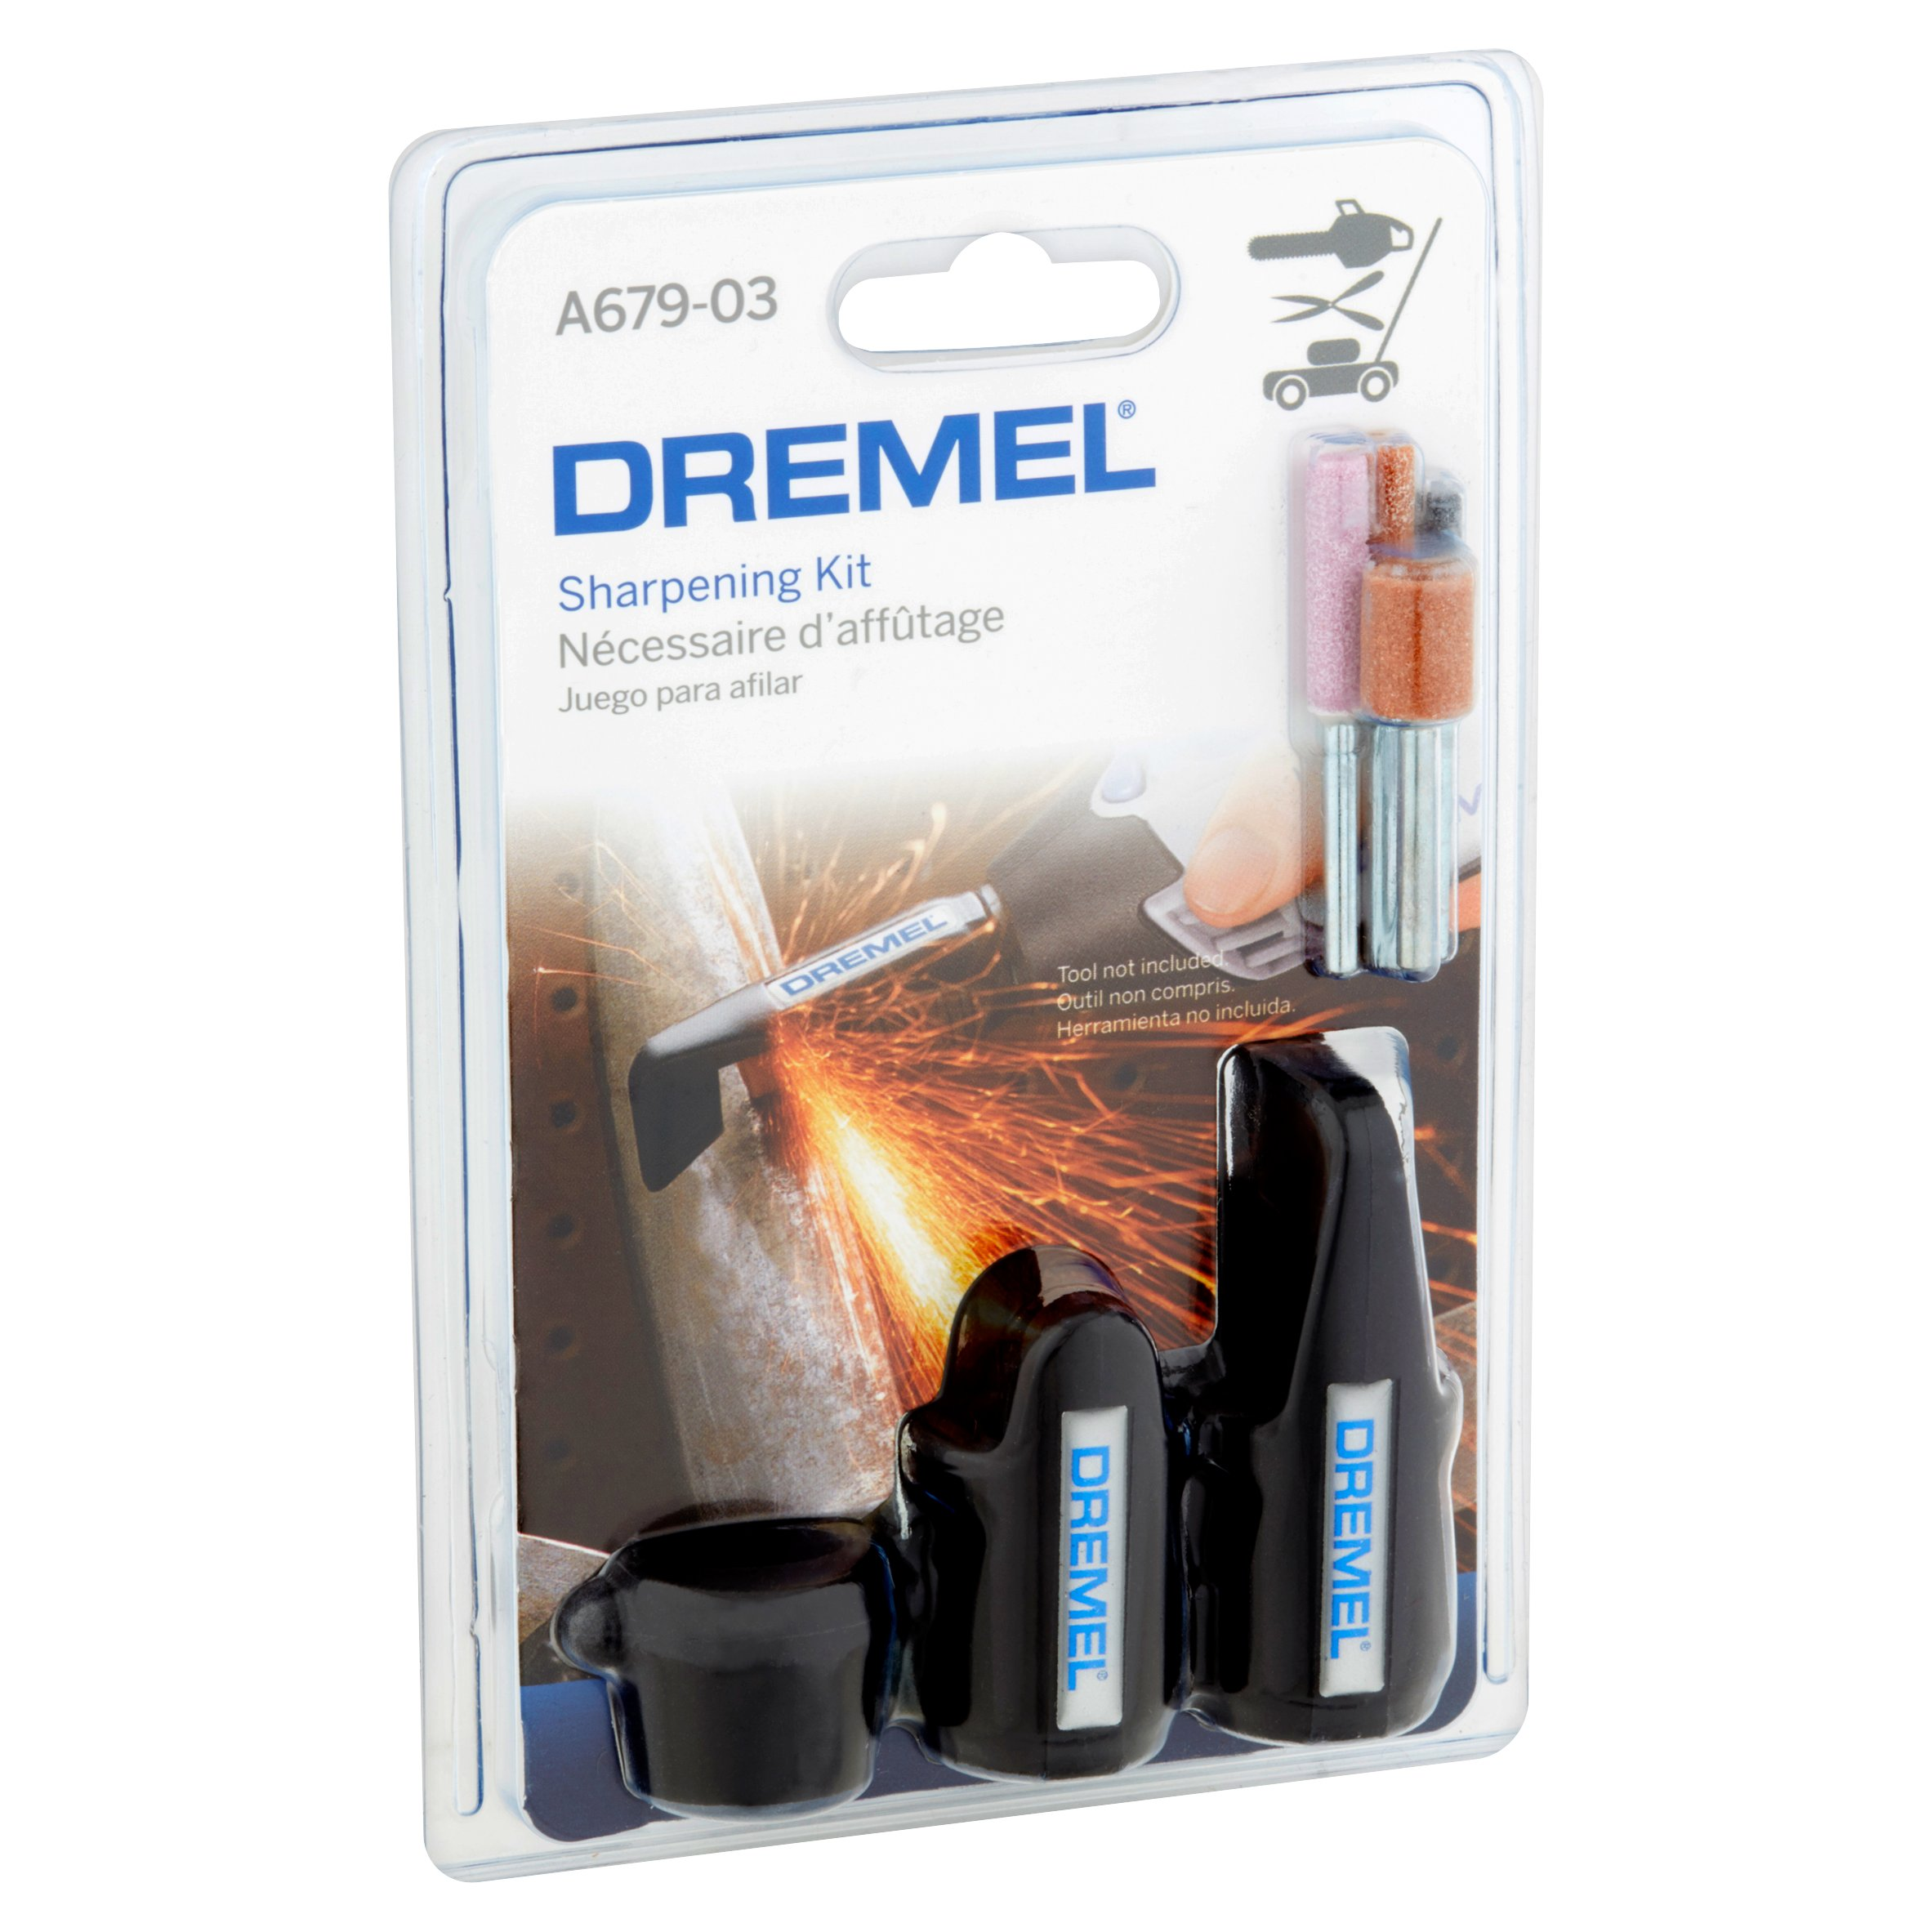 Dremel A679-03 Rotary Tool Sharpening Kit, 3 Attachments And